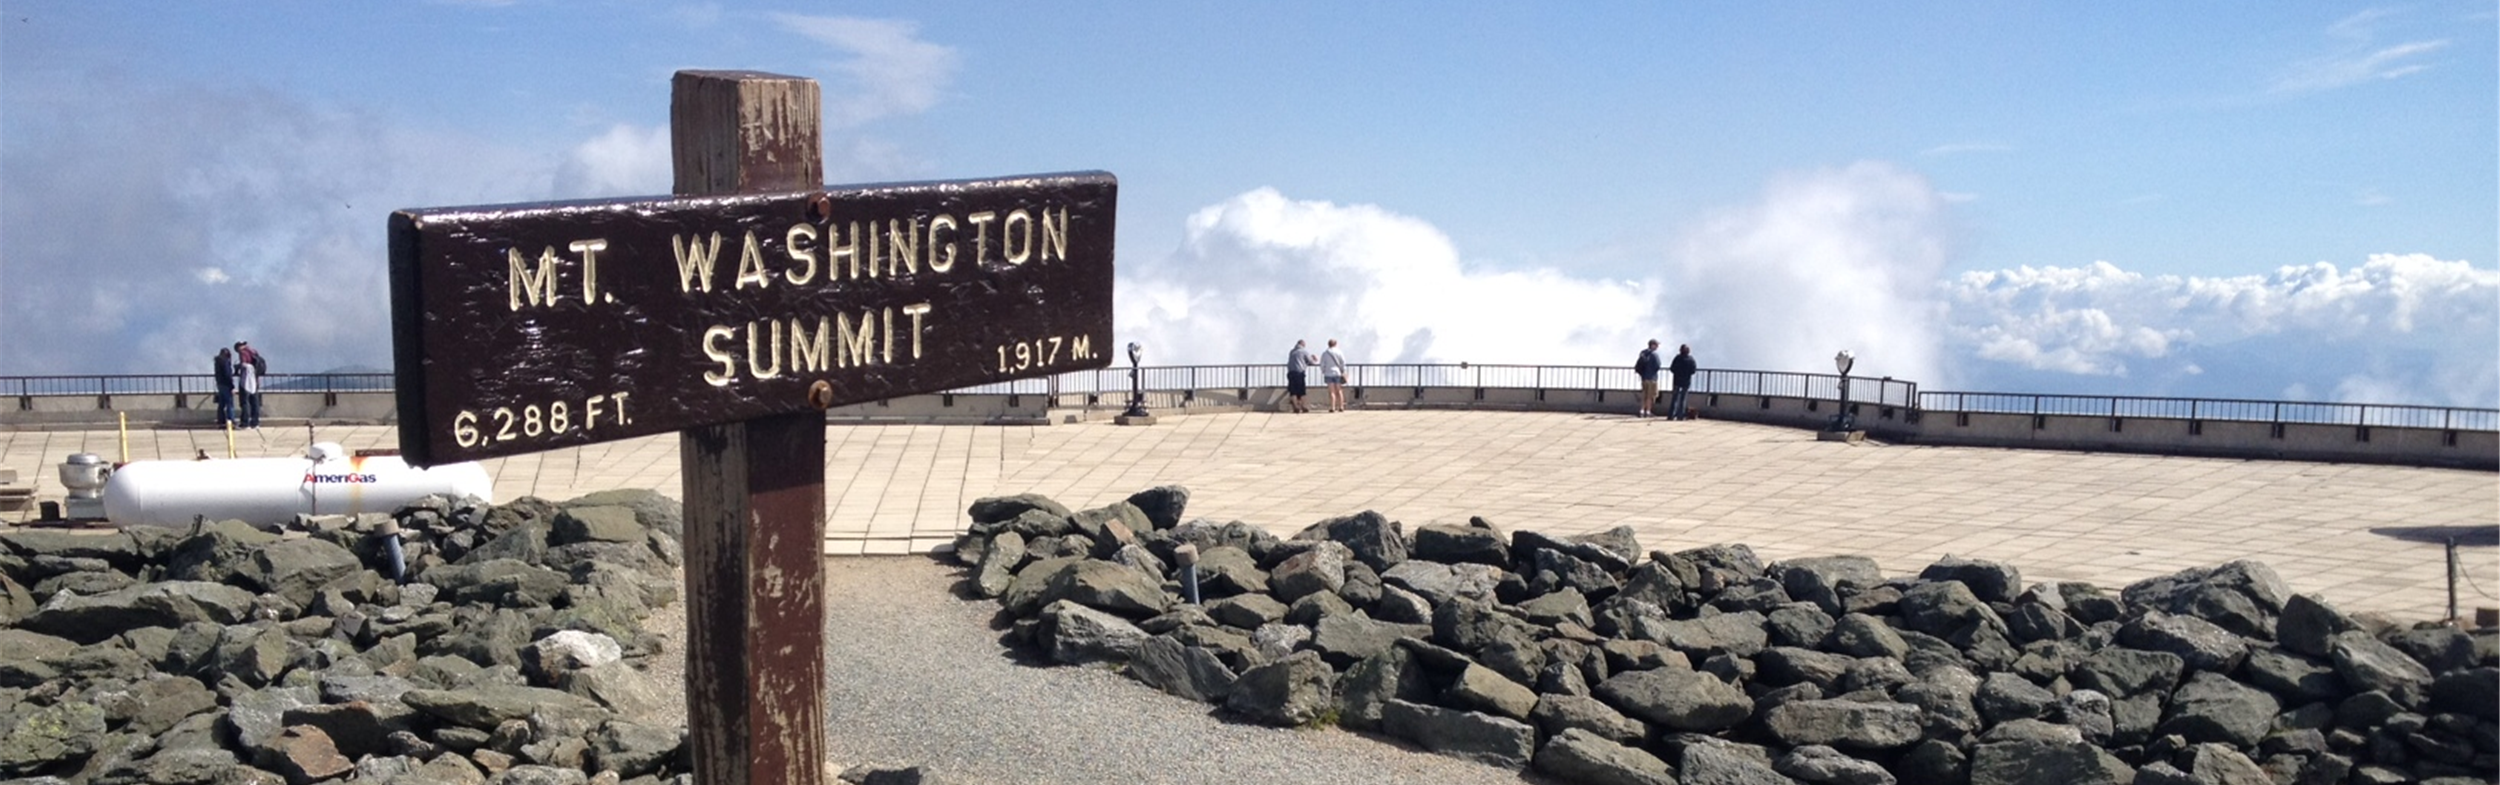 7-6-mt-washington-summit.png